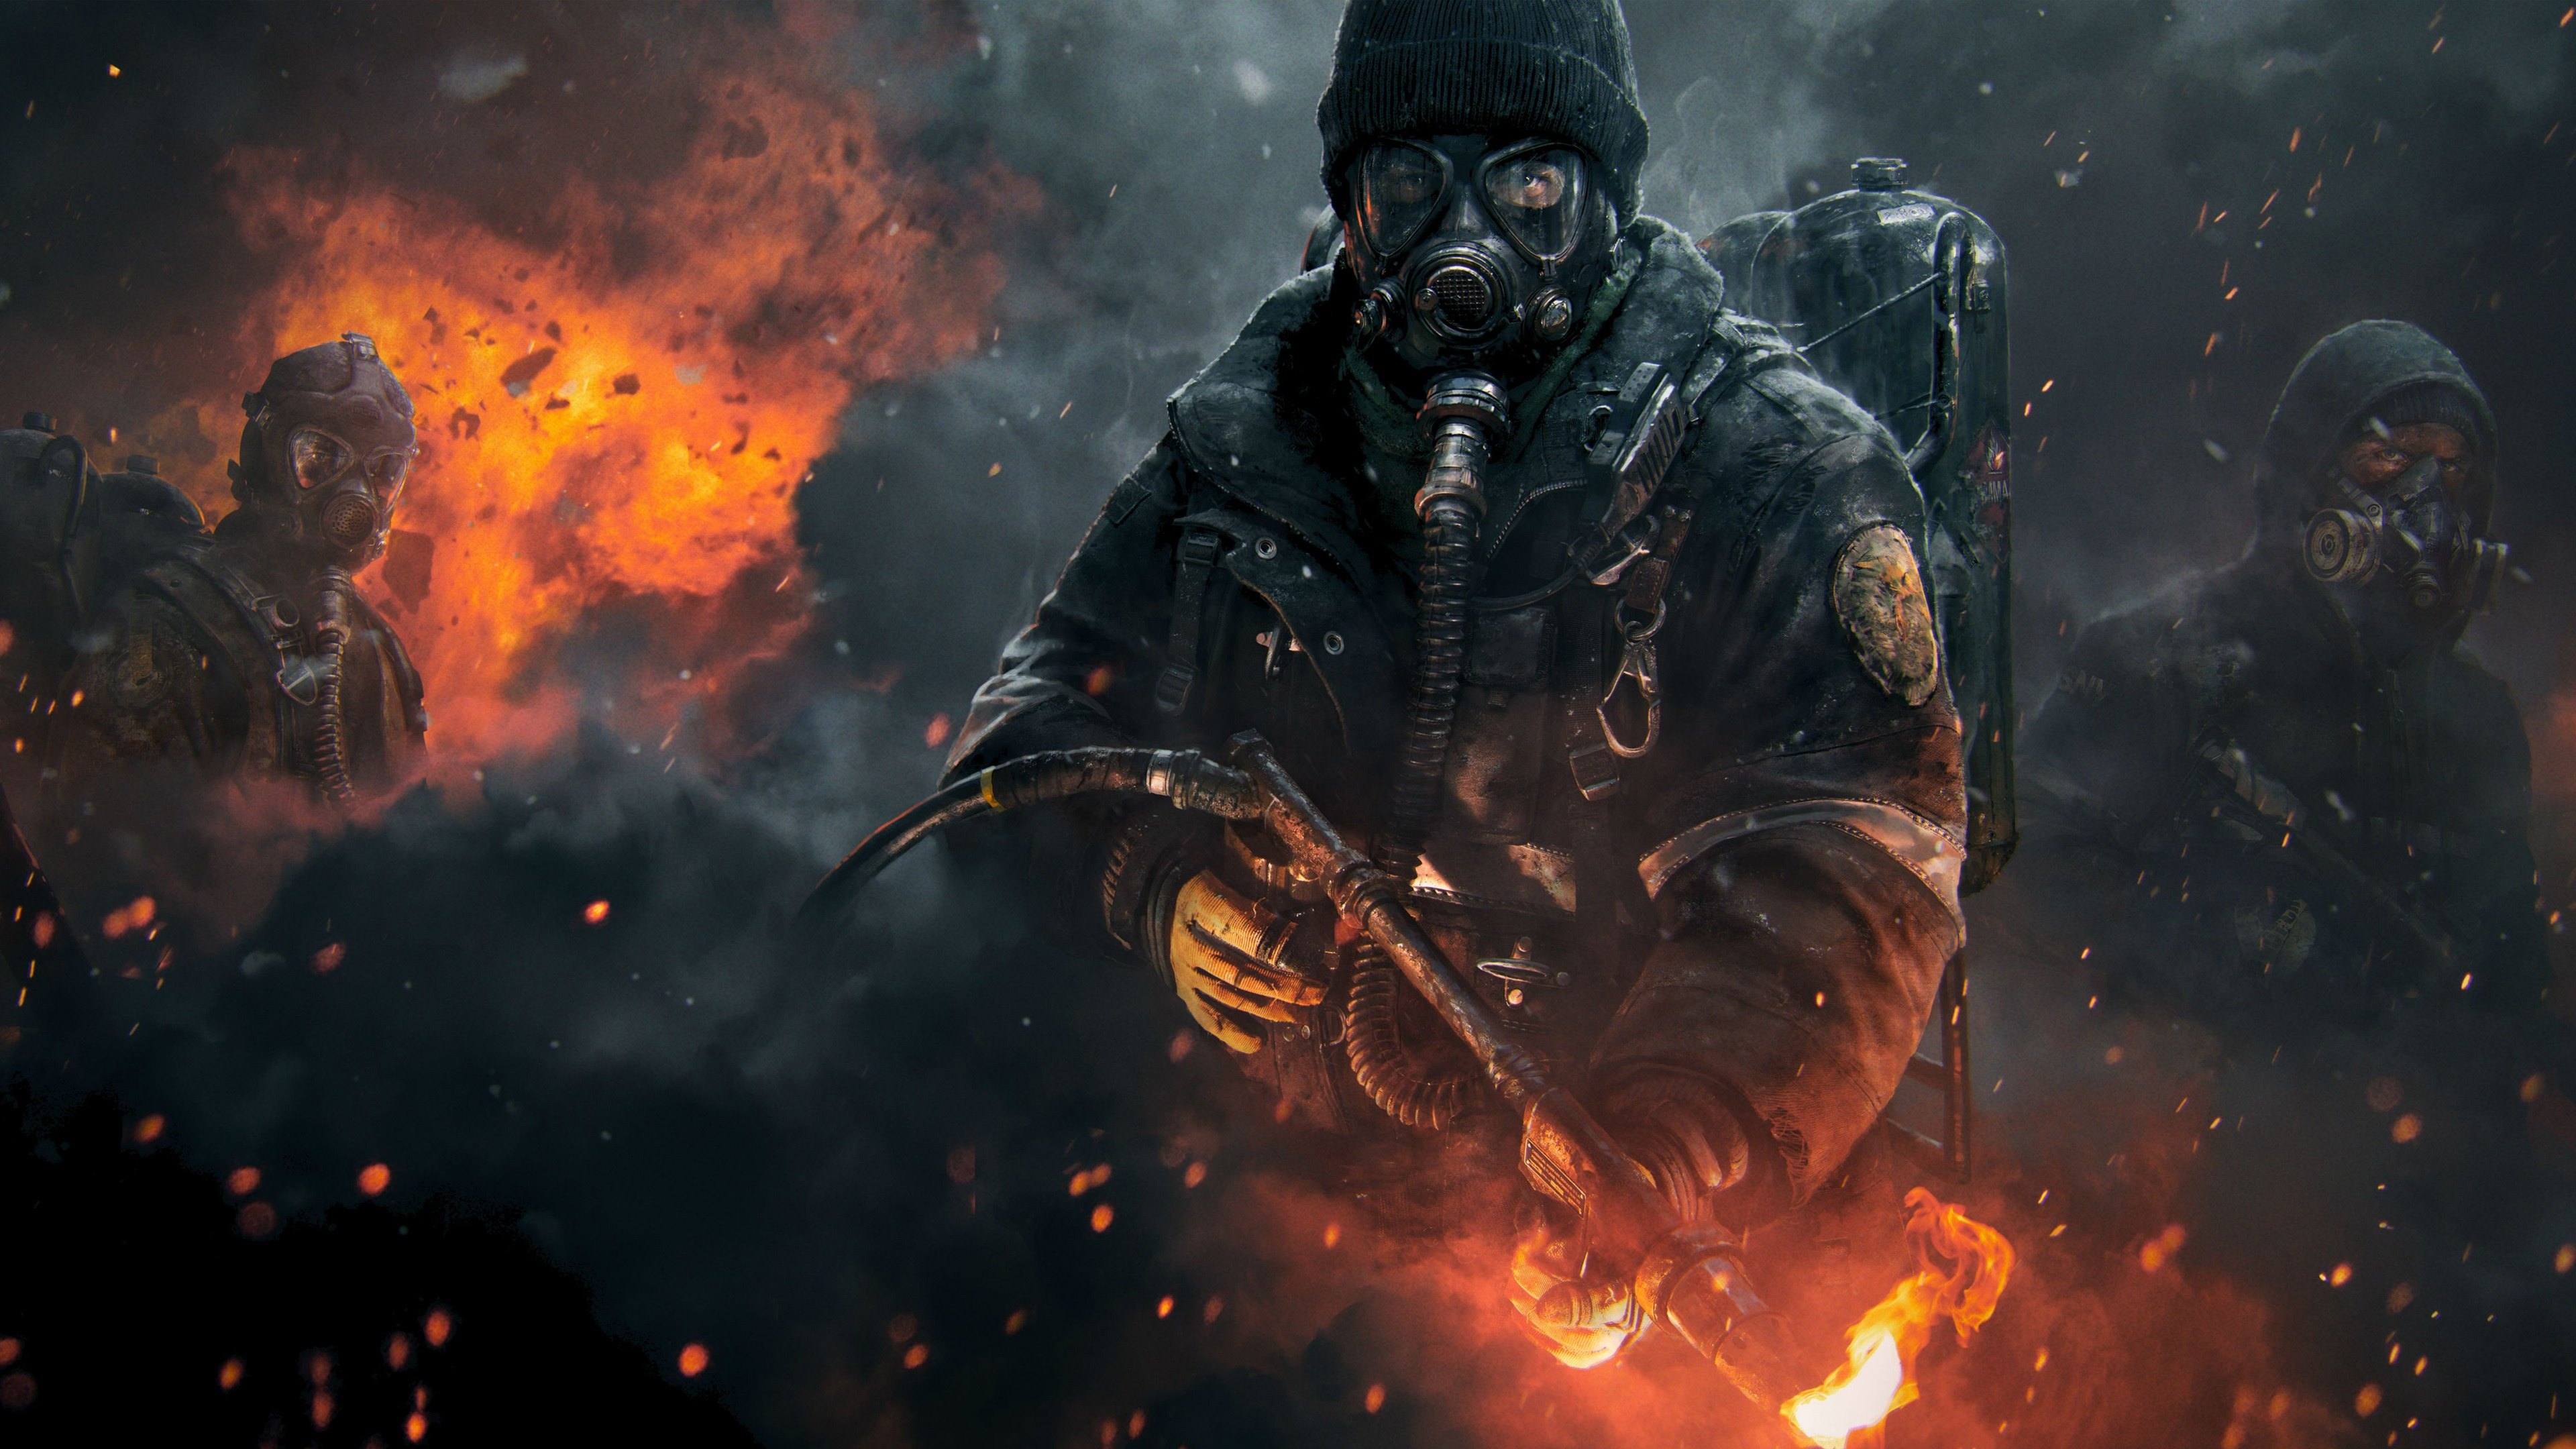 Tom Clancys The Division Wallpapers HD Wallpapers 3840x2160